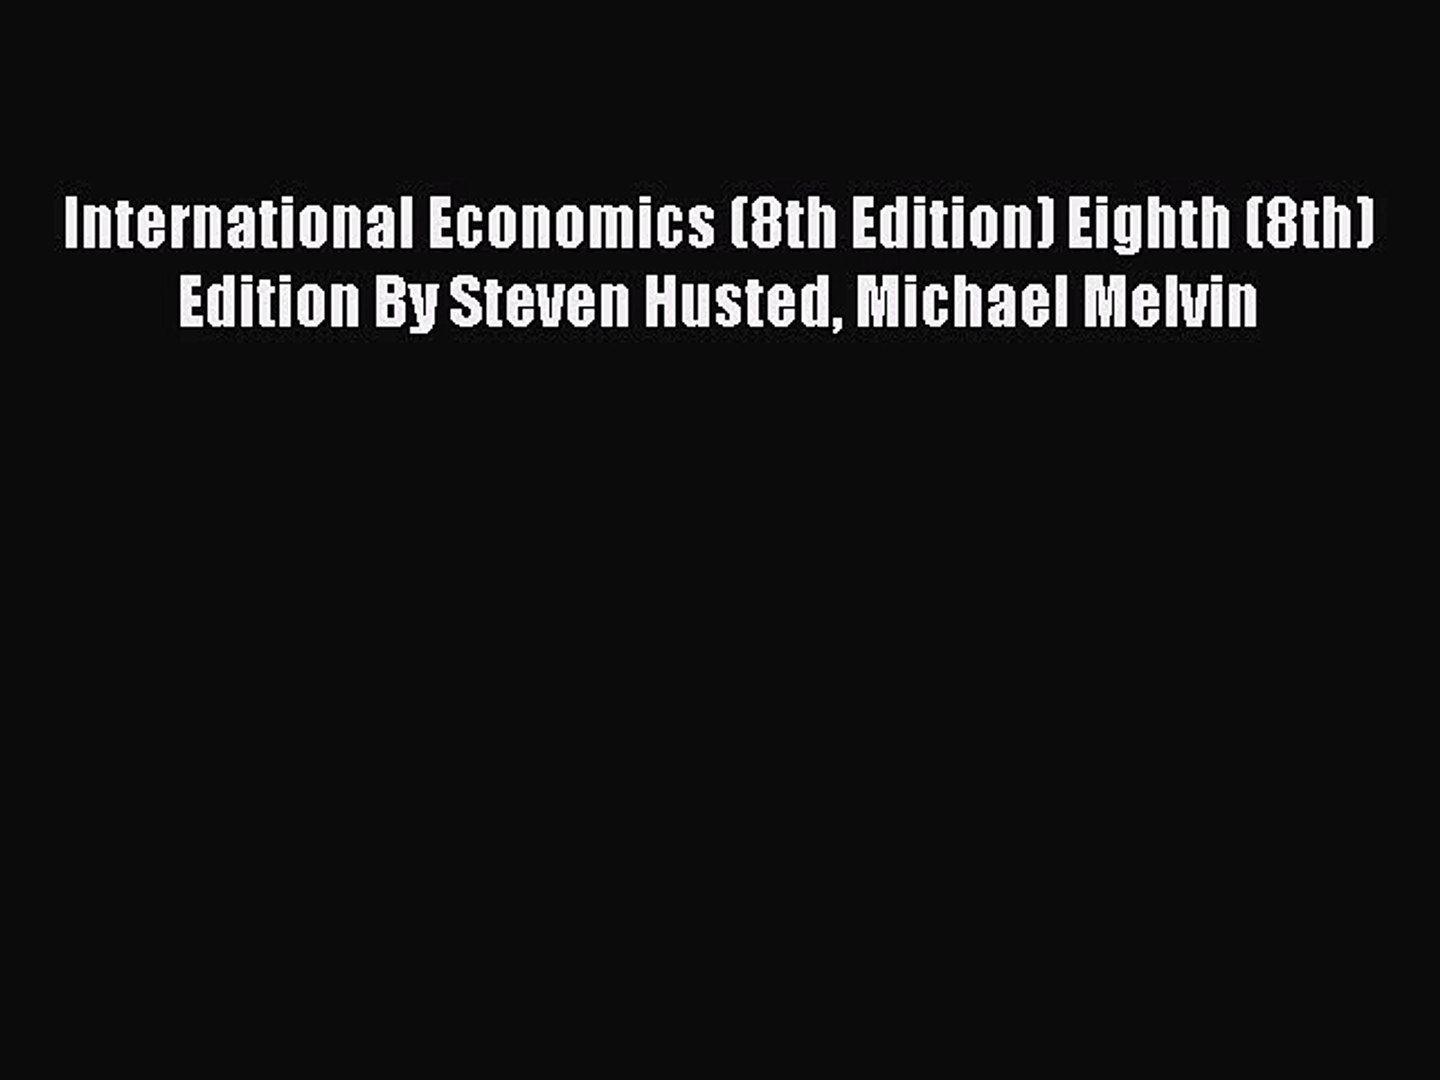 Download International Economics (8th Edition) Eighth (8th) Edition By Steven Husted Michael